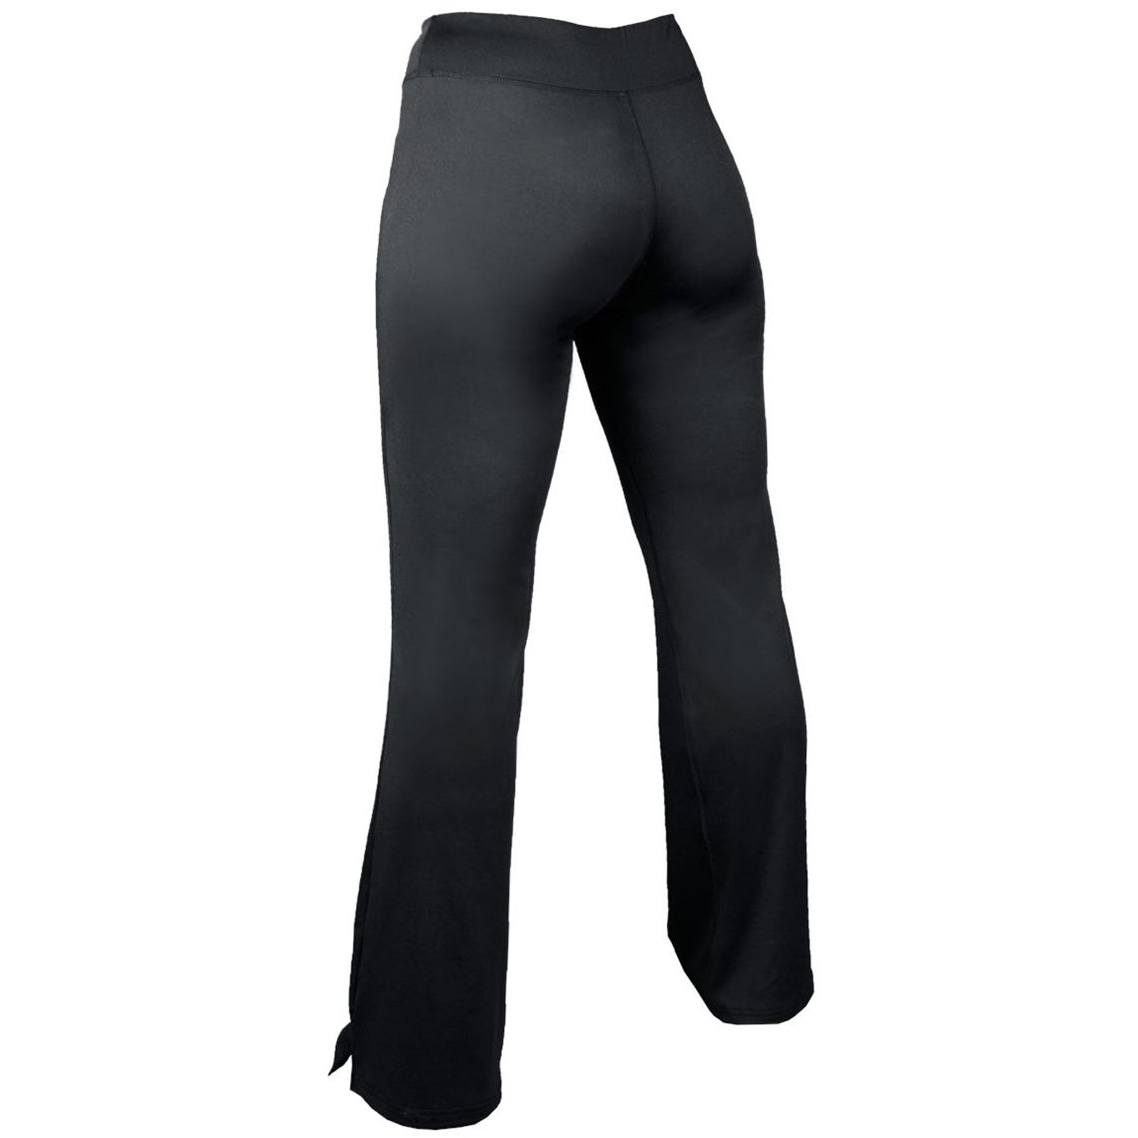 Fantastic Impact Fitness  Tall Inseam Length Combat Pant For Women39s Workout